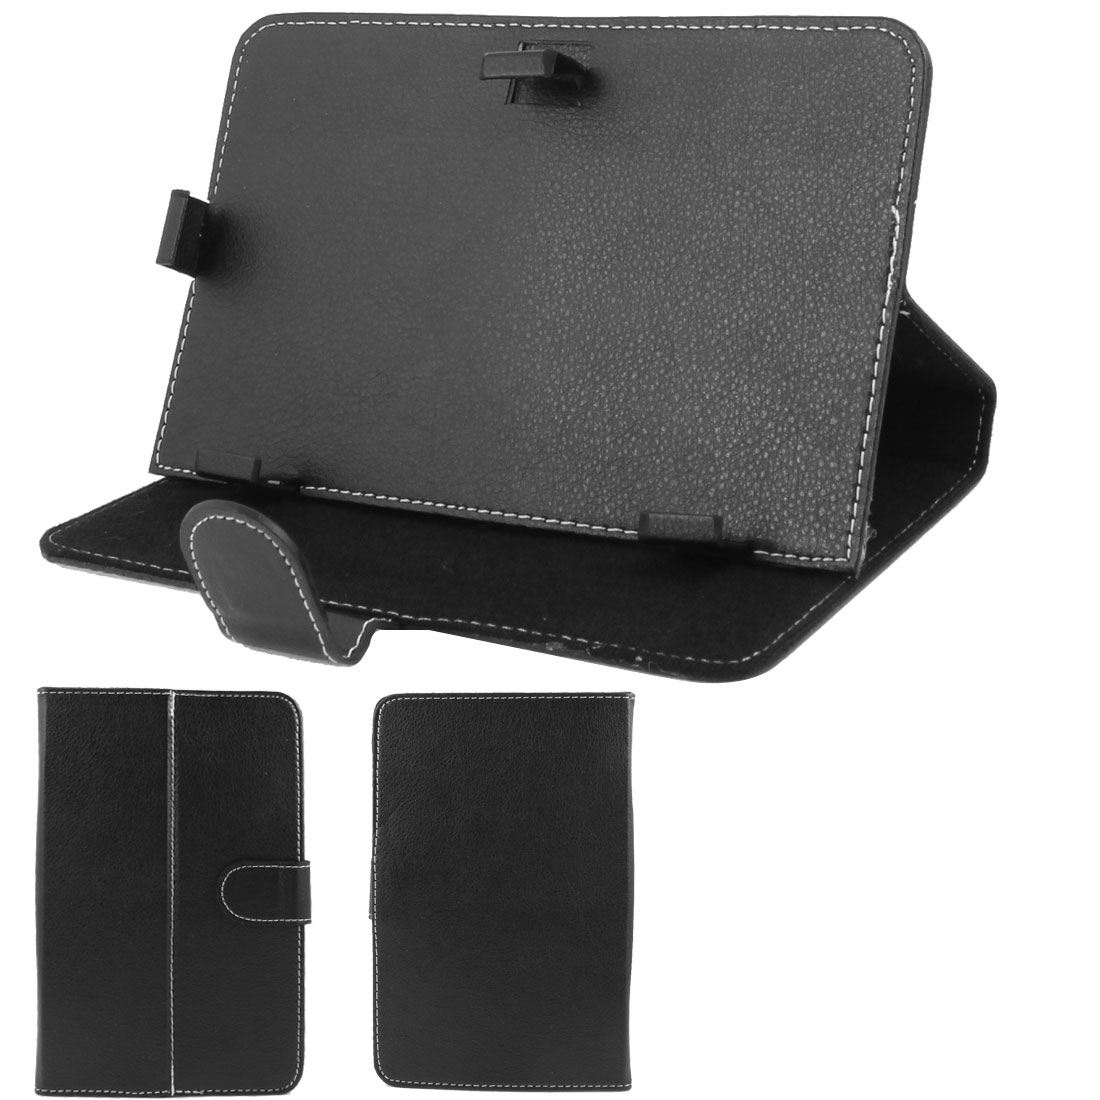 "Black Stitched Faux Leather Magnetic Flip Stand Case Cover for 7"" Tablet PC"